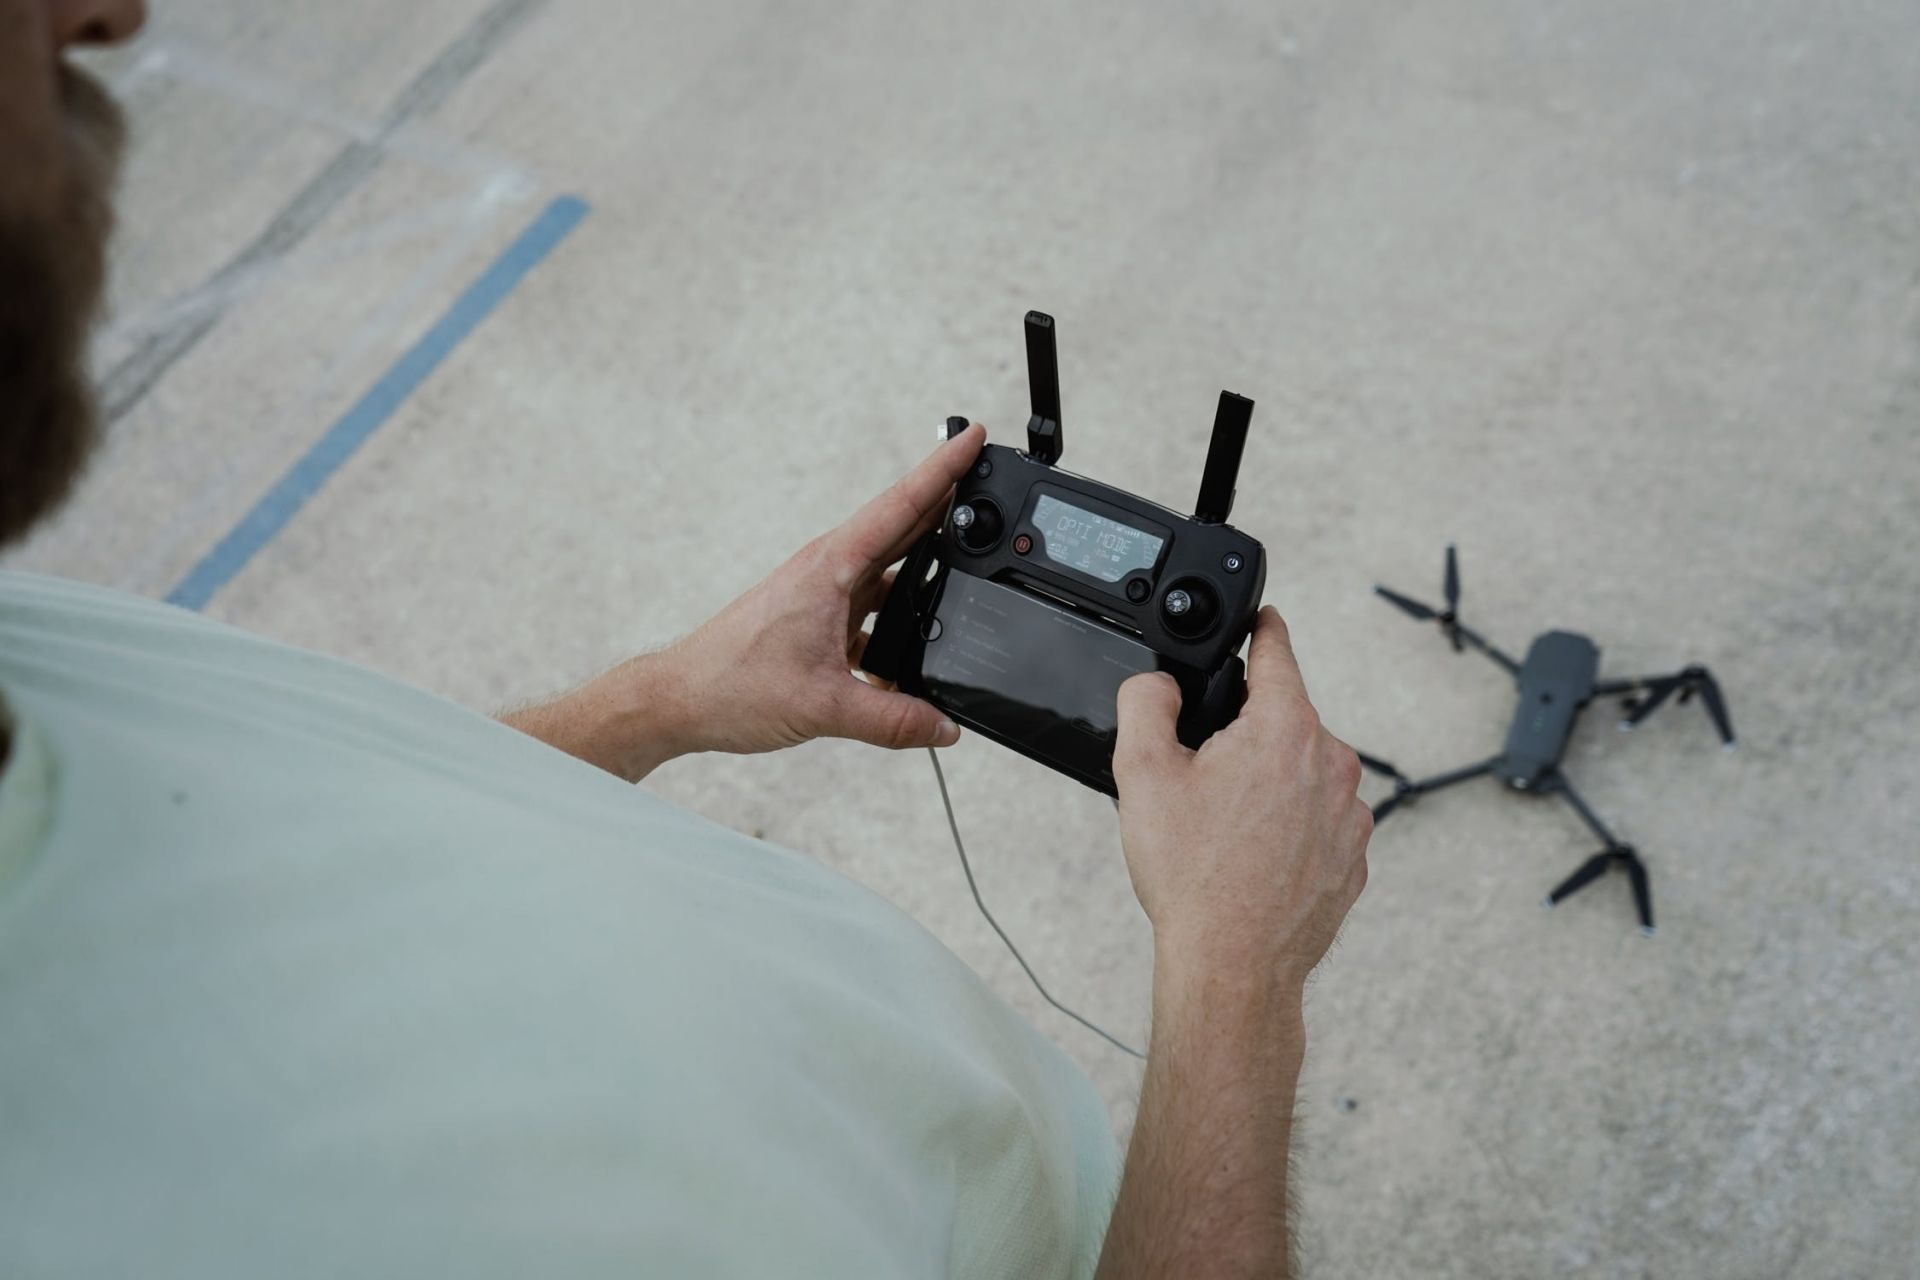 What Qualifications Do I Need To Become A Commercial Drone Operator?